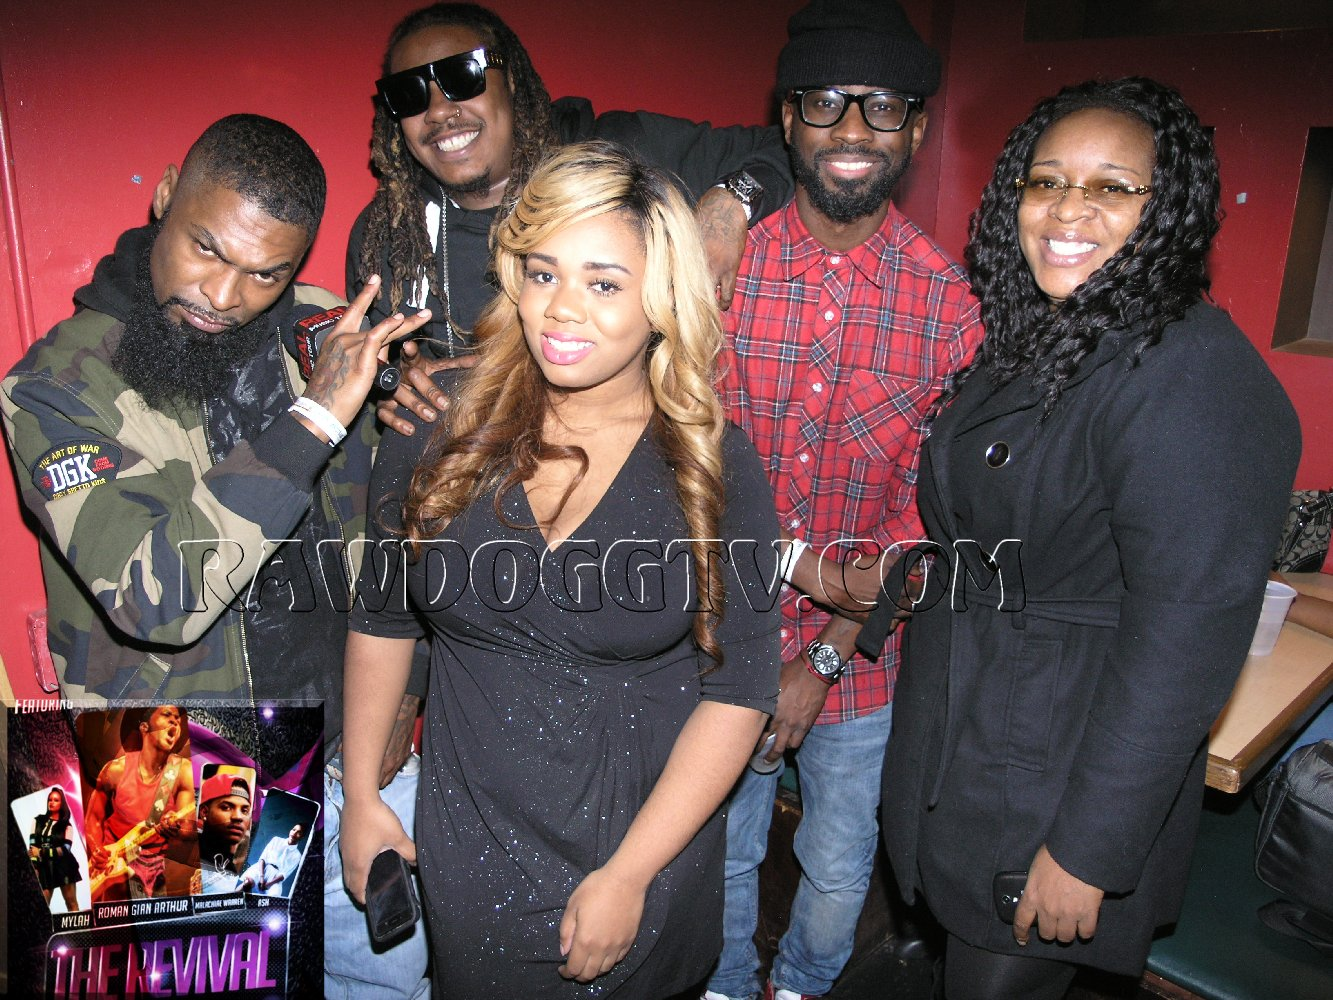 THE REVIVAL R&B SHOWCASE PHOTOS 2015 brian michael cox Atlanta Roman Gianarthur, Mylah, Malachiae, b cox, Real Music Tour-RAWDOGGTV 305-490-2182 Viral Marketing (13)